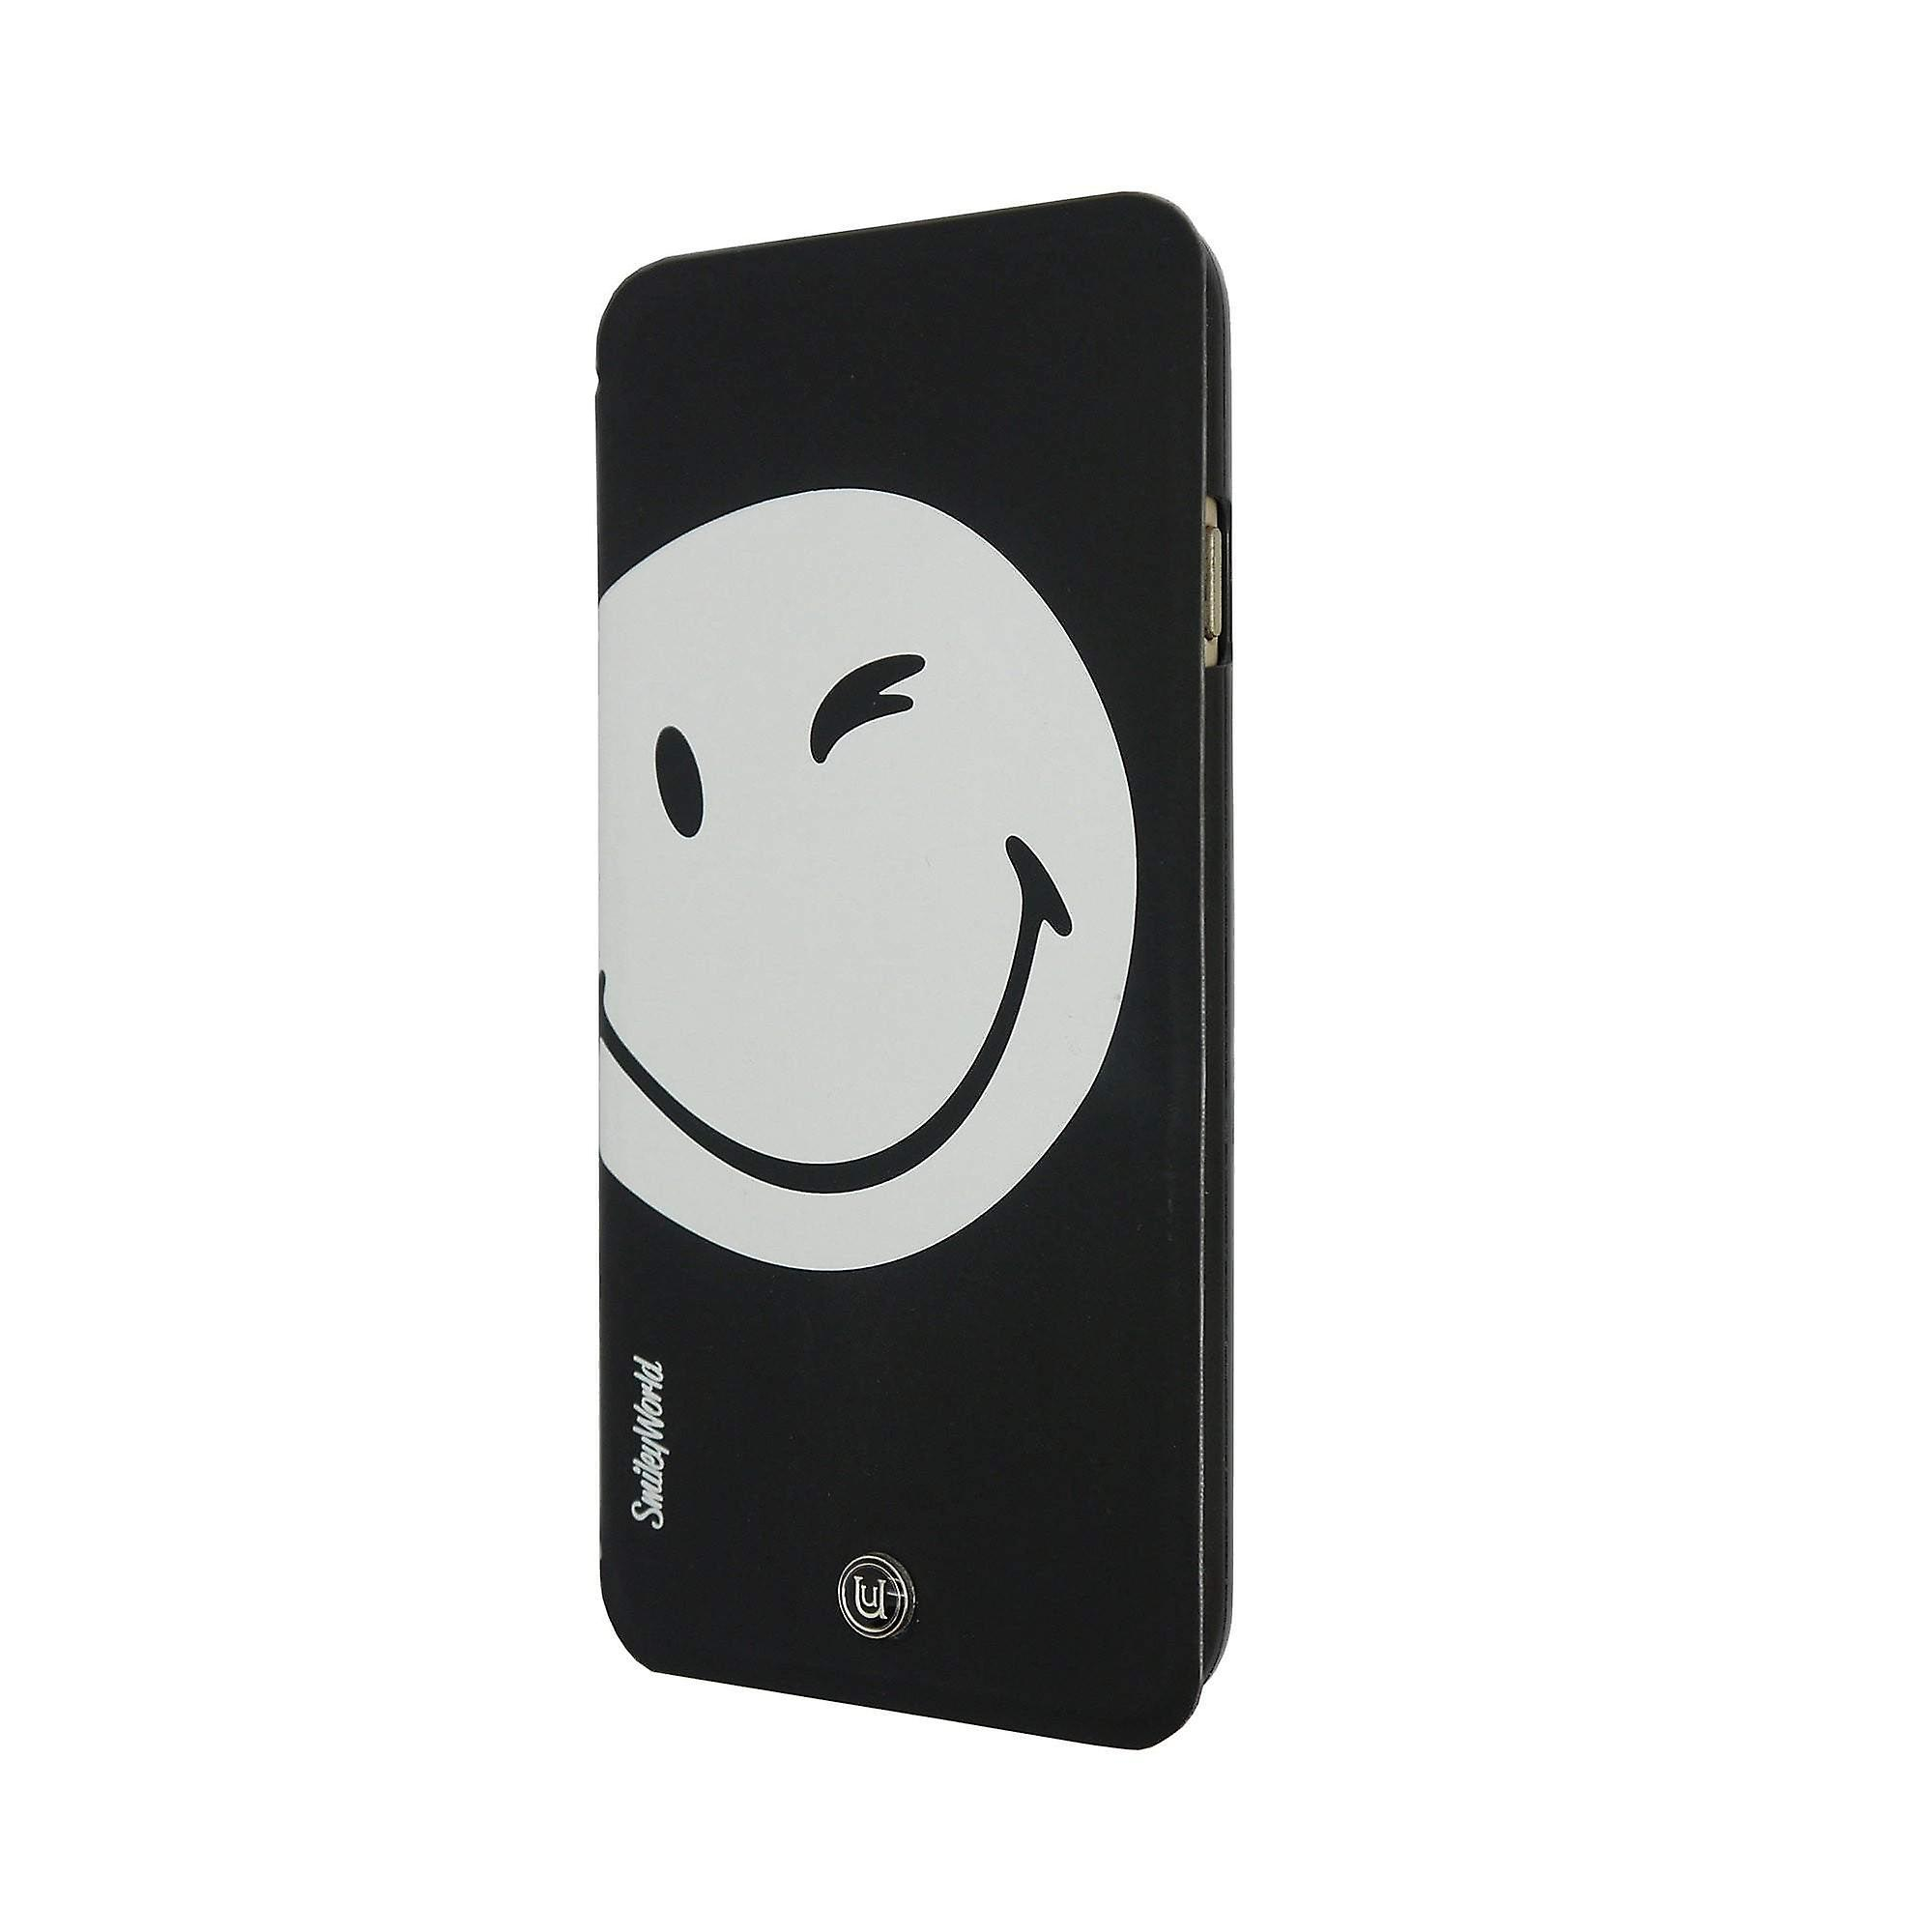 iPhone 6 Magnetic 2 in 1 Folio & Hard Shell Black/White